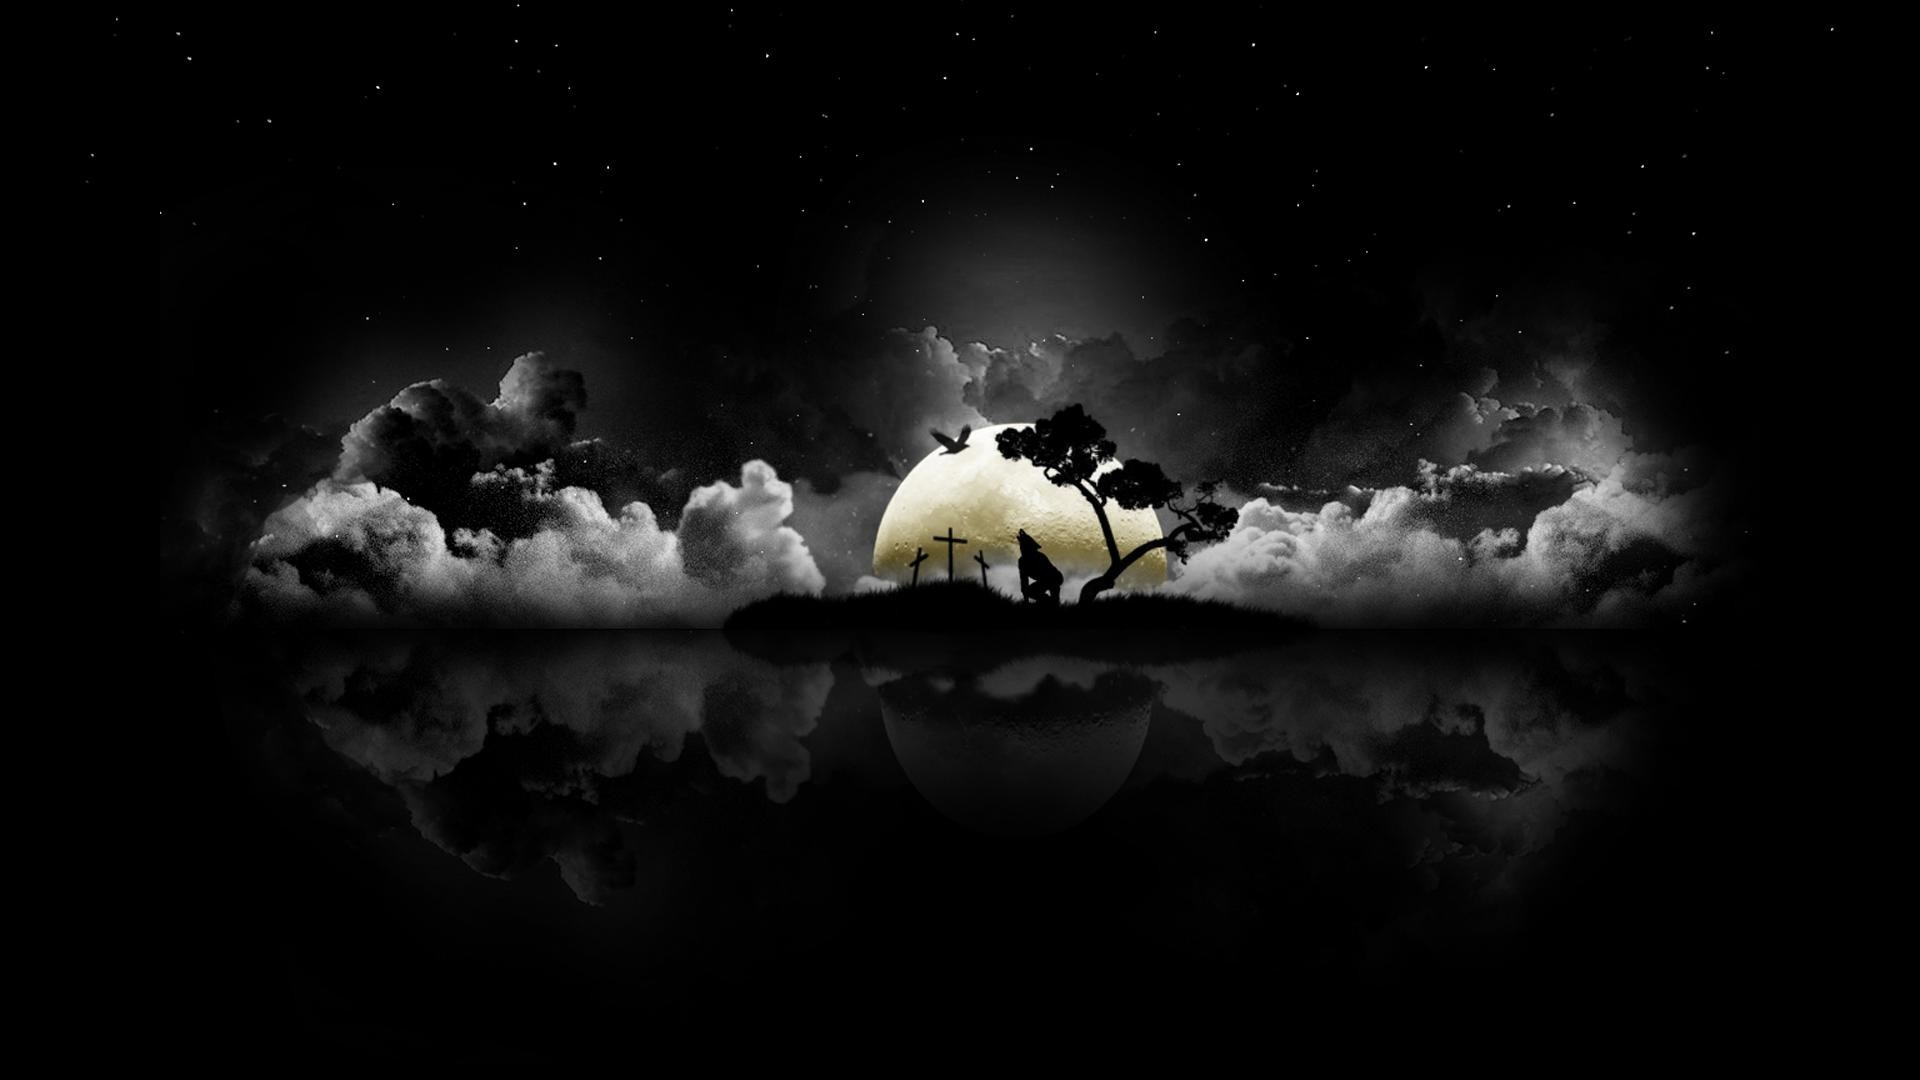 1920x1080  Dark Night Black Wolf Howling Clouds Moon Halloween Wallpaper .